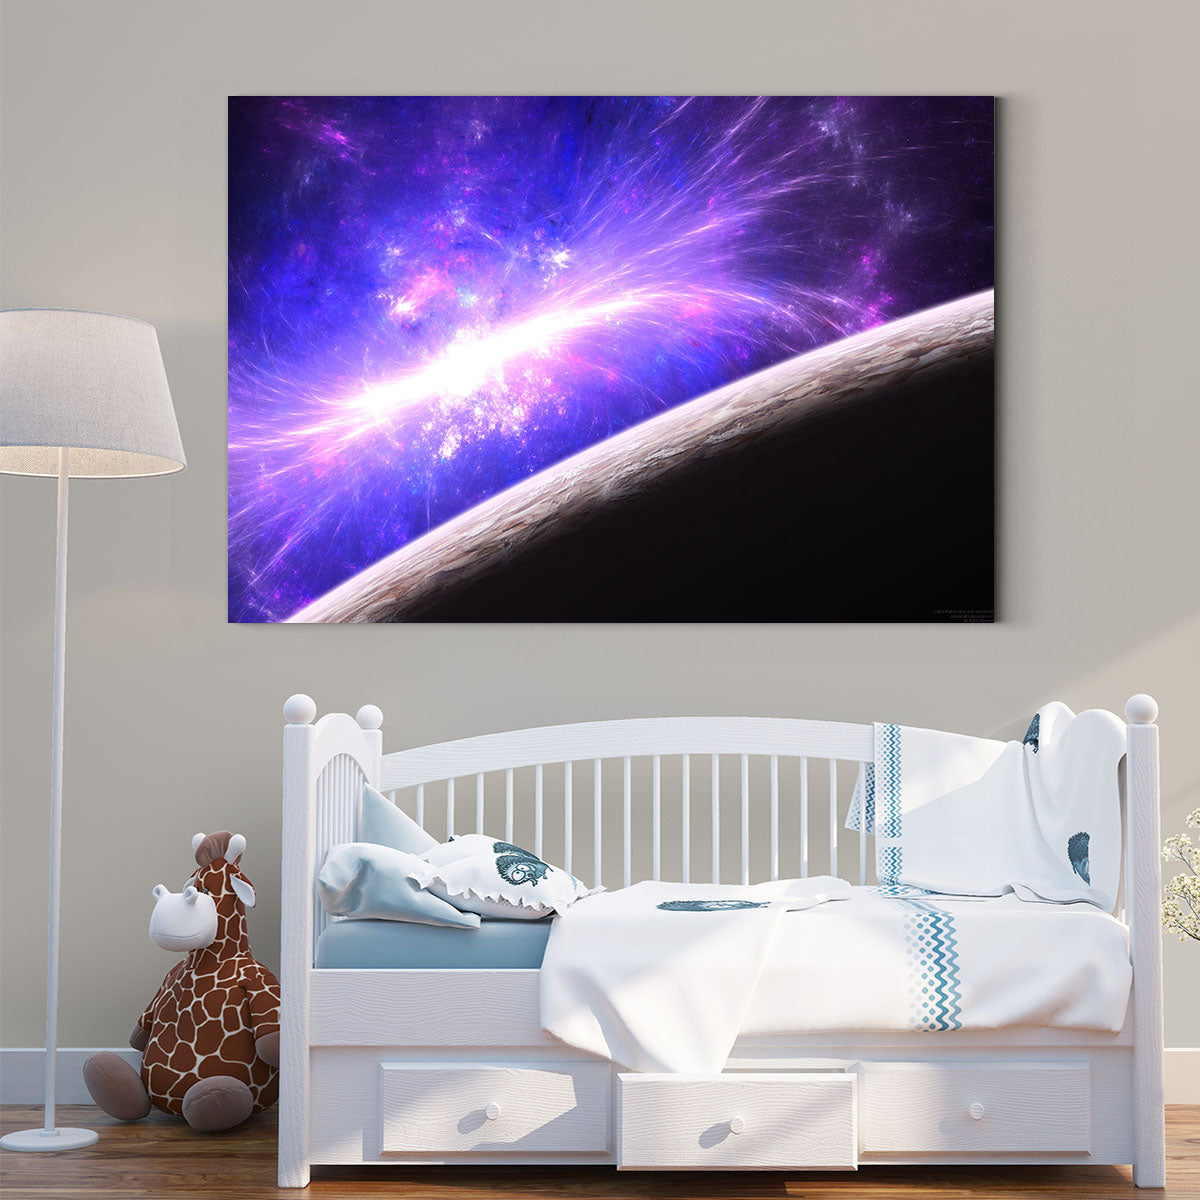 The radiance of the planet decorative painting 003